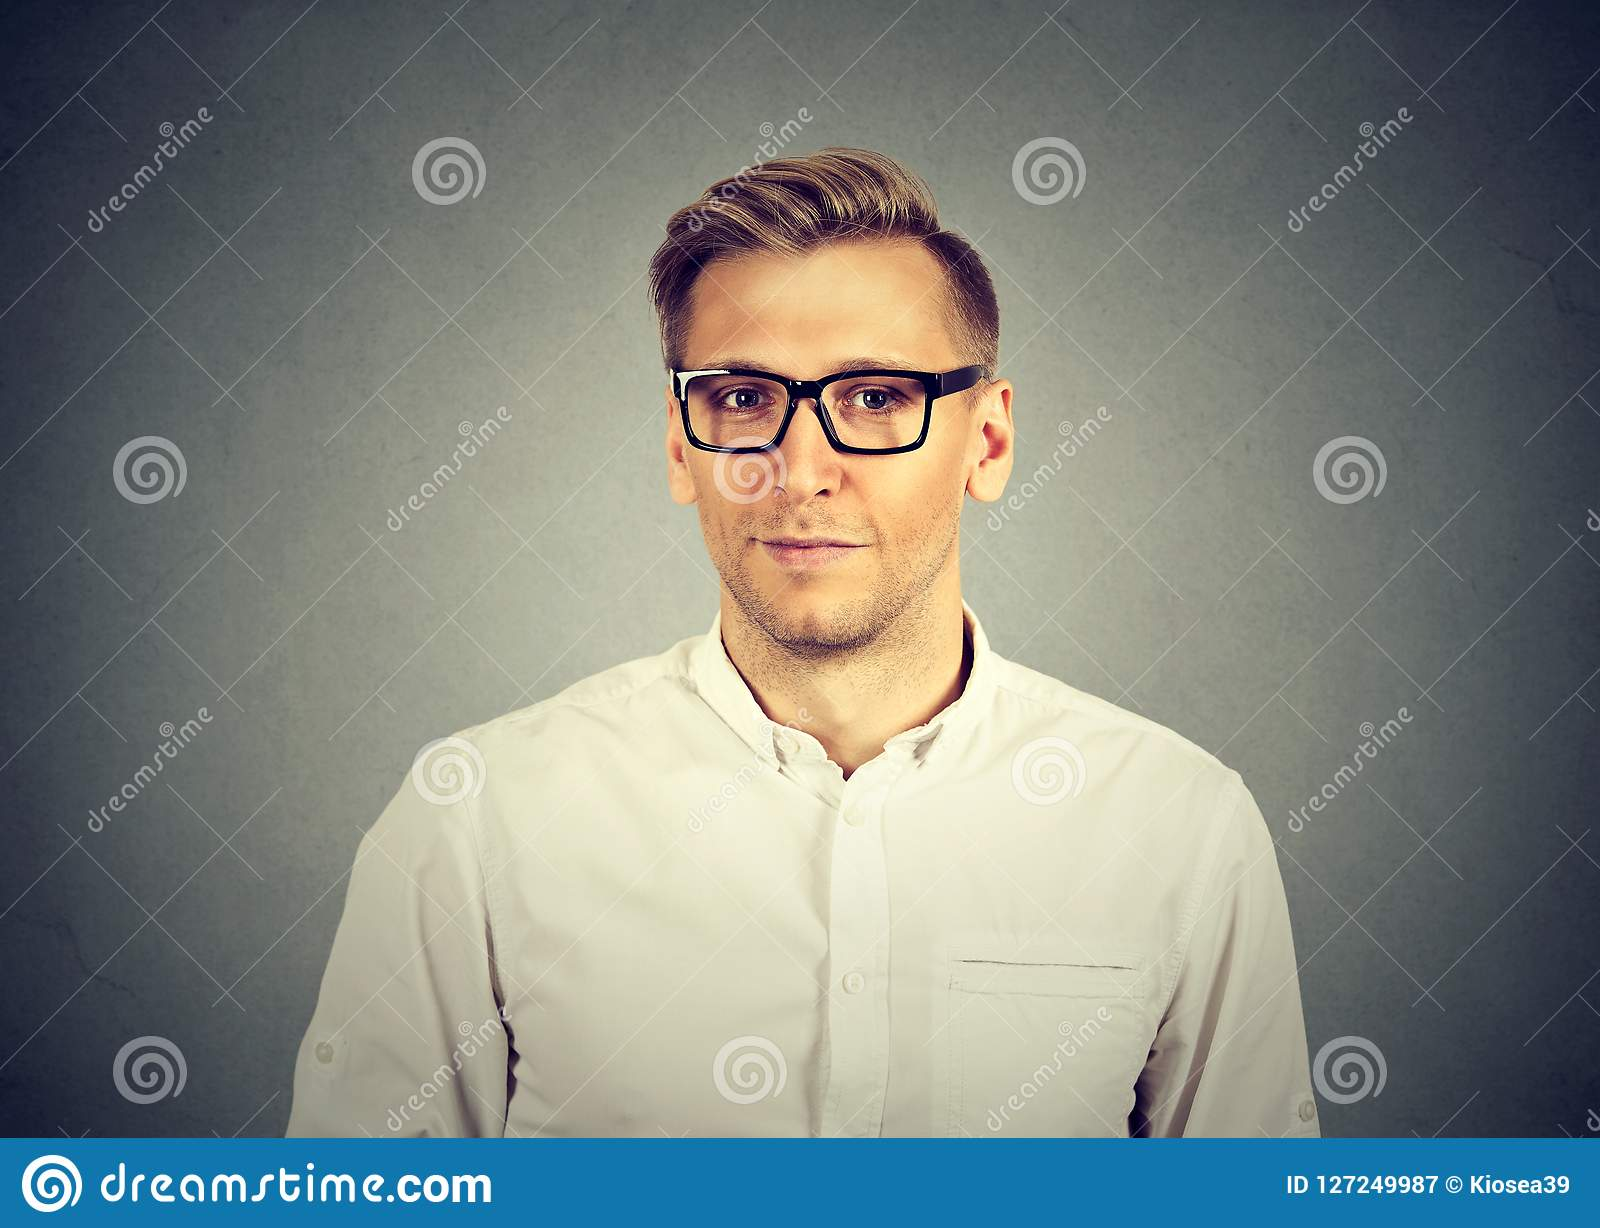 b1df5bbe0cd Adult handsome man in white shirt and black eyeglasses looking at camera on  gray background